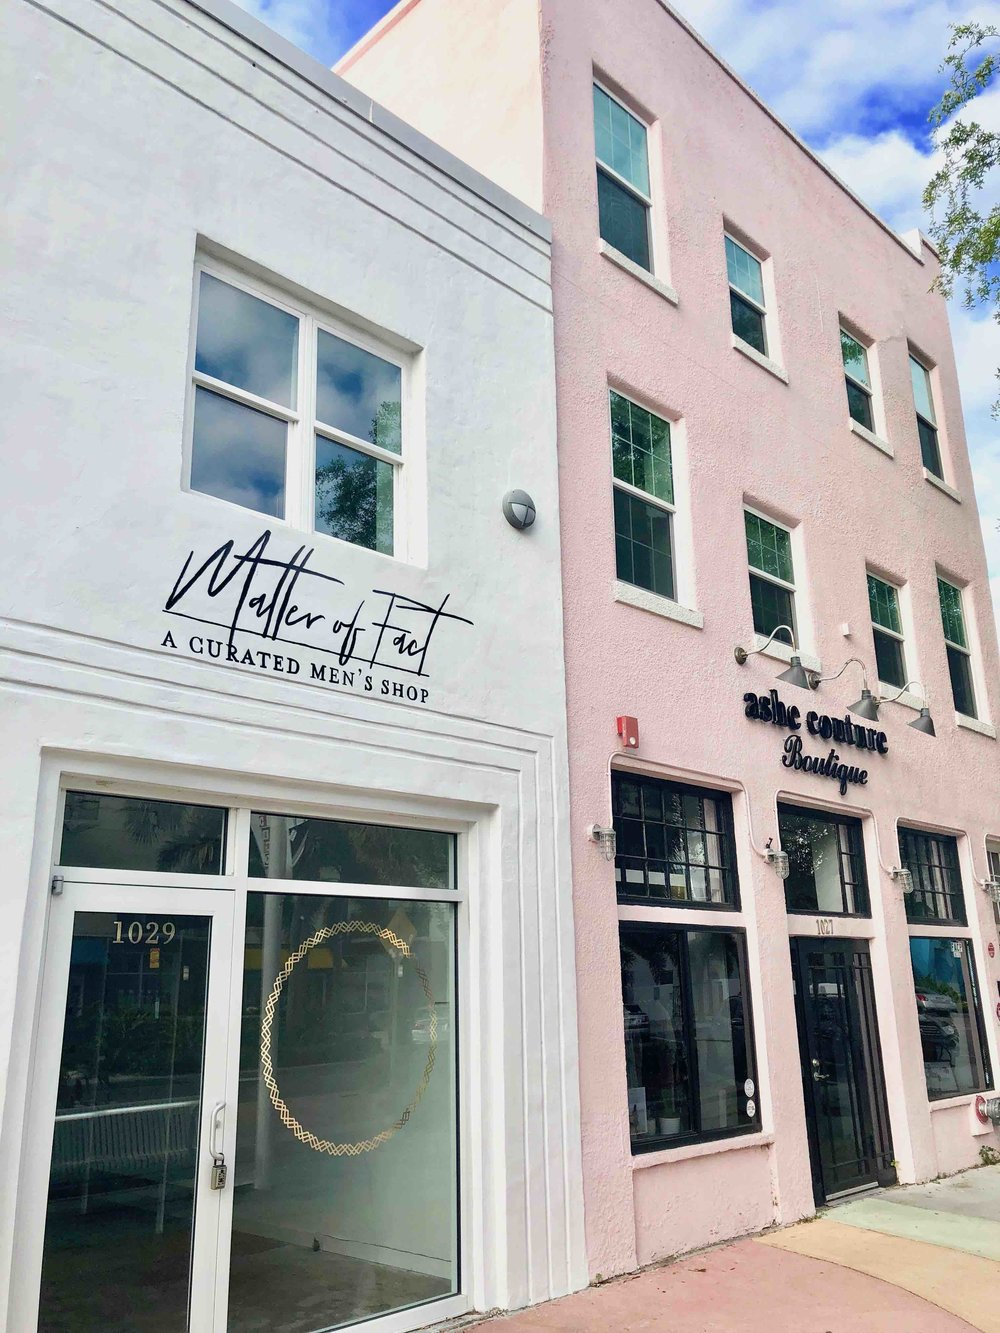 Matter of Fact is located at 1029 Central Ave, next door to Ashe Couture, a women's boutique